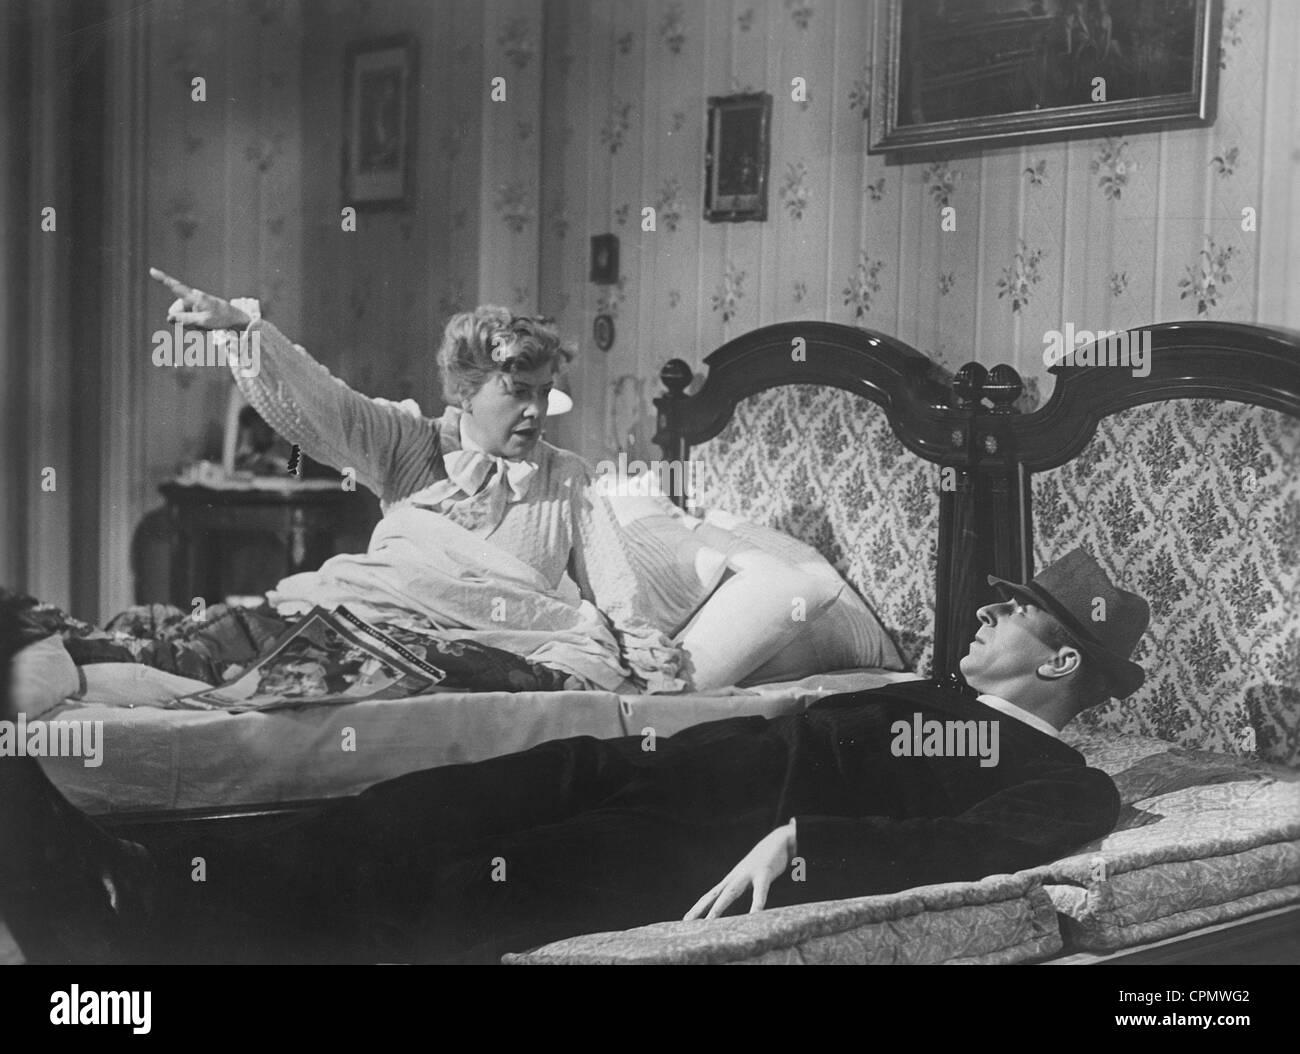 Ida Wuest and Theo Lingen in 'Seven Years Bad Luck', 1940 Stock Photo